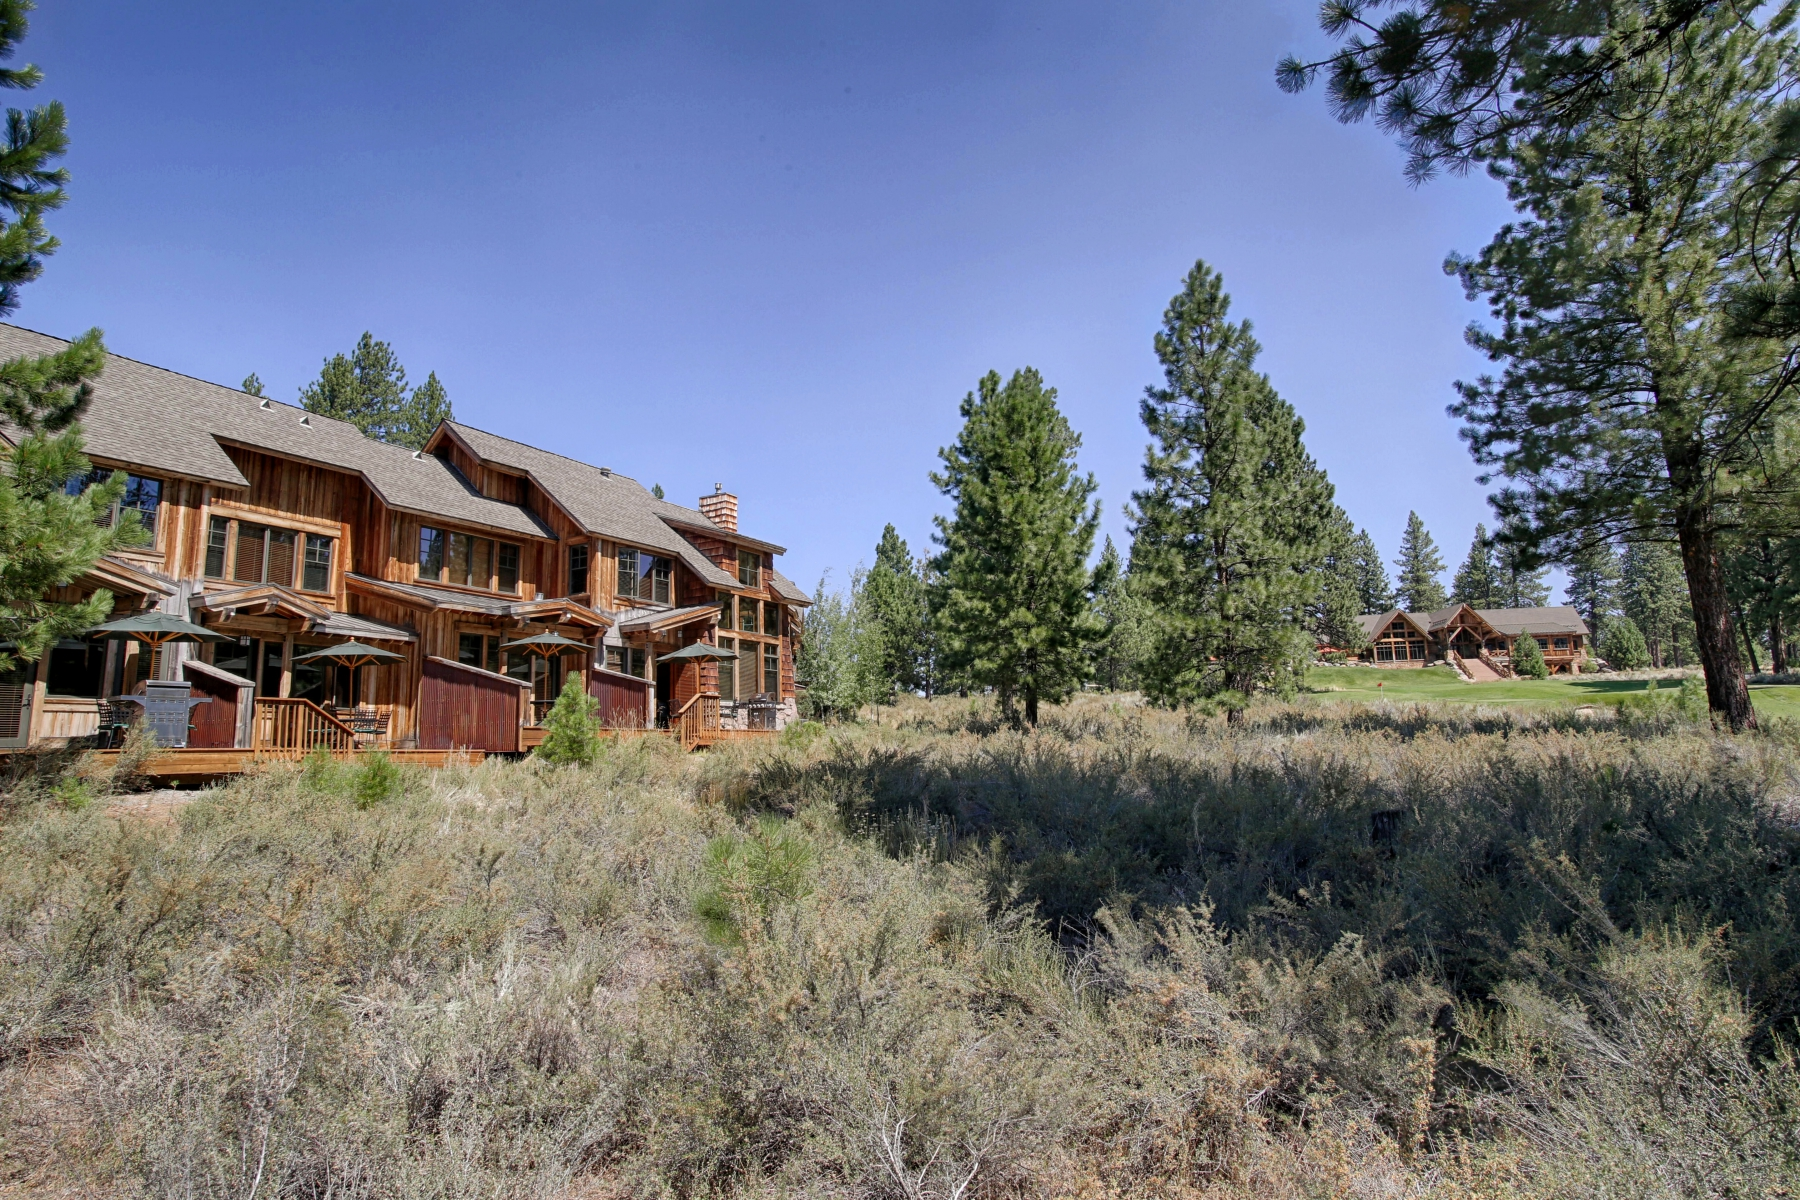 Additional photo for property listing at 12588 Legacy Court A9A-01 Truckee,California, 96161 12588 Legacy Court A9A-01 特拉基, 加利福尼亚州 96161 美国